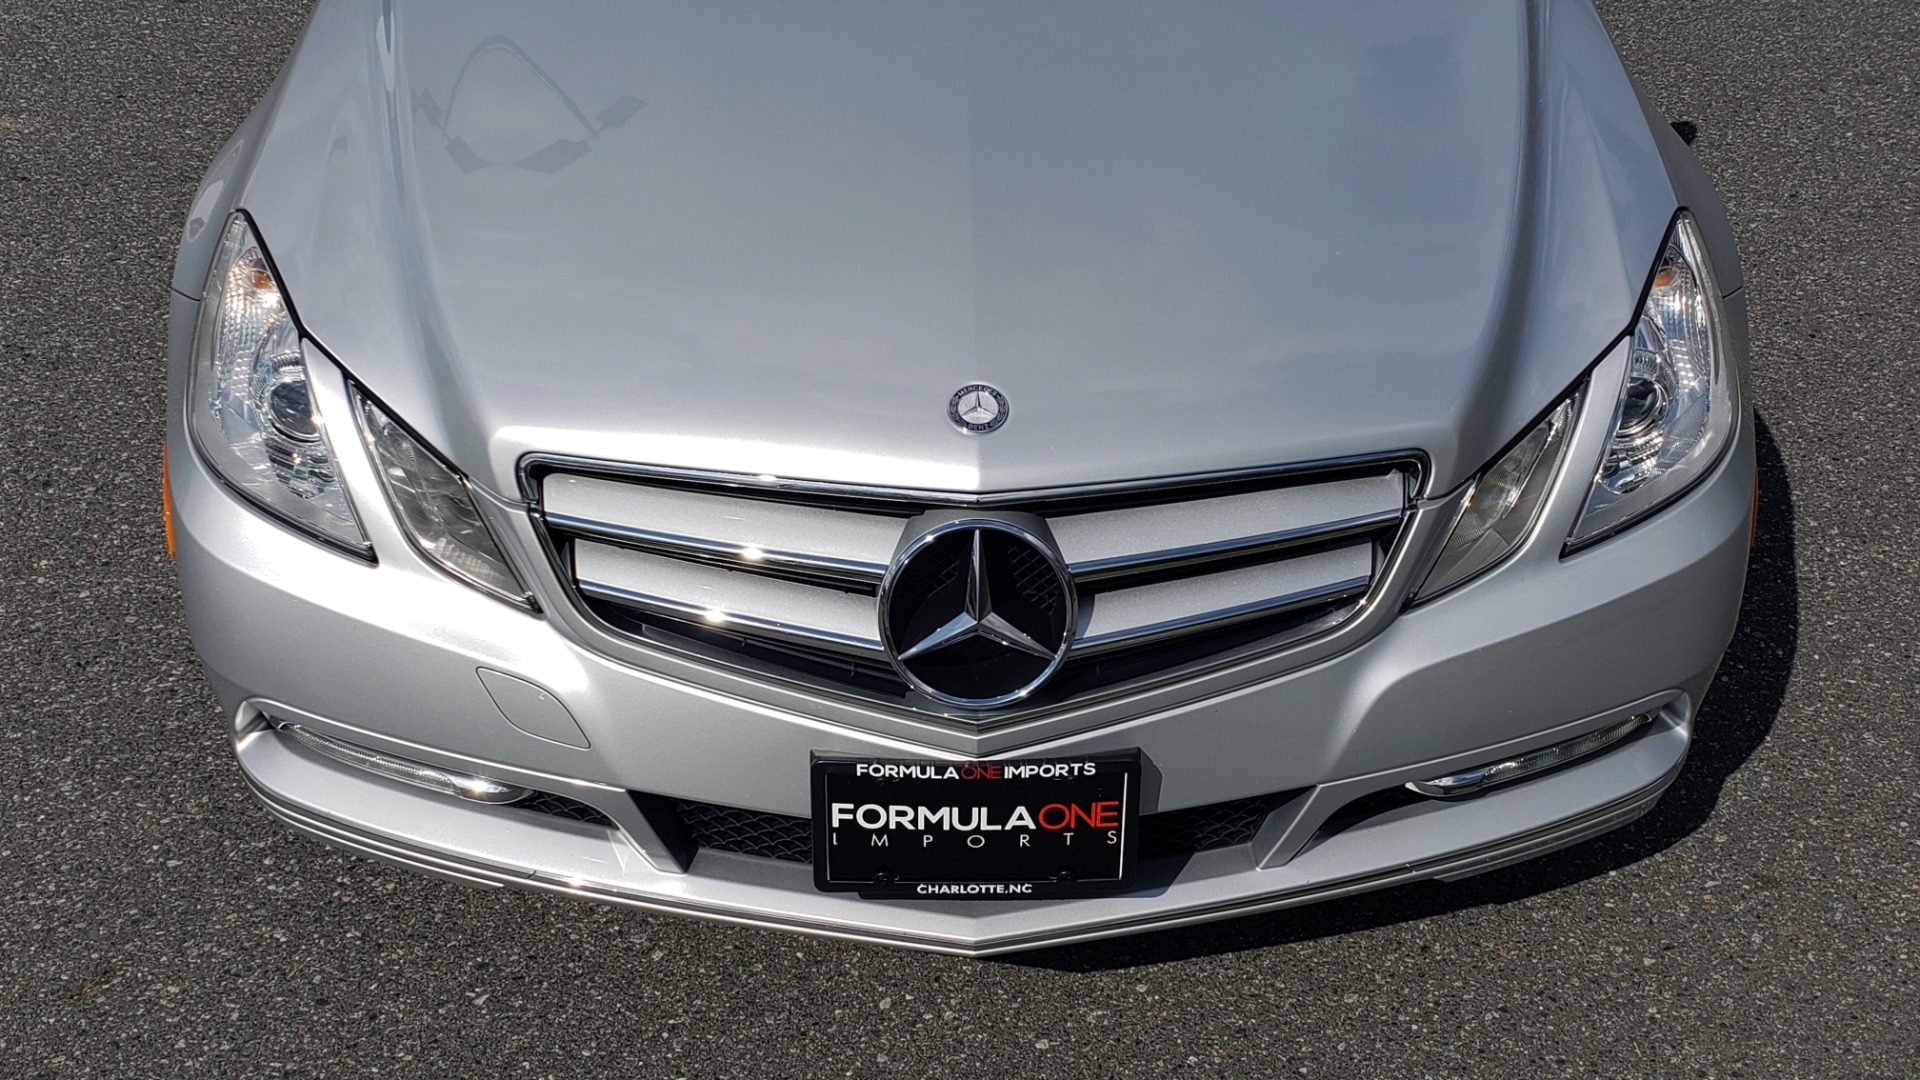 Used 2013 Mercedes-Benz E-CLASS E 350 COUPE PREM / NAV / PANO-ROFF / KEYLESS-GO / REARVIEW for sale Sold at Formula Imports in Charlotte NC 28227 15